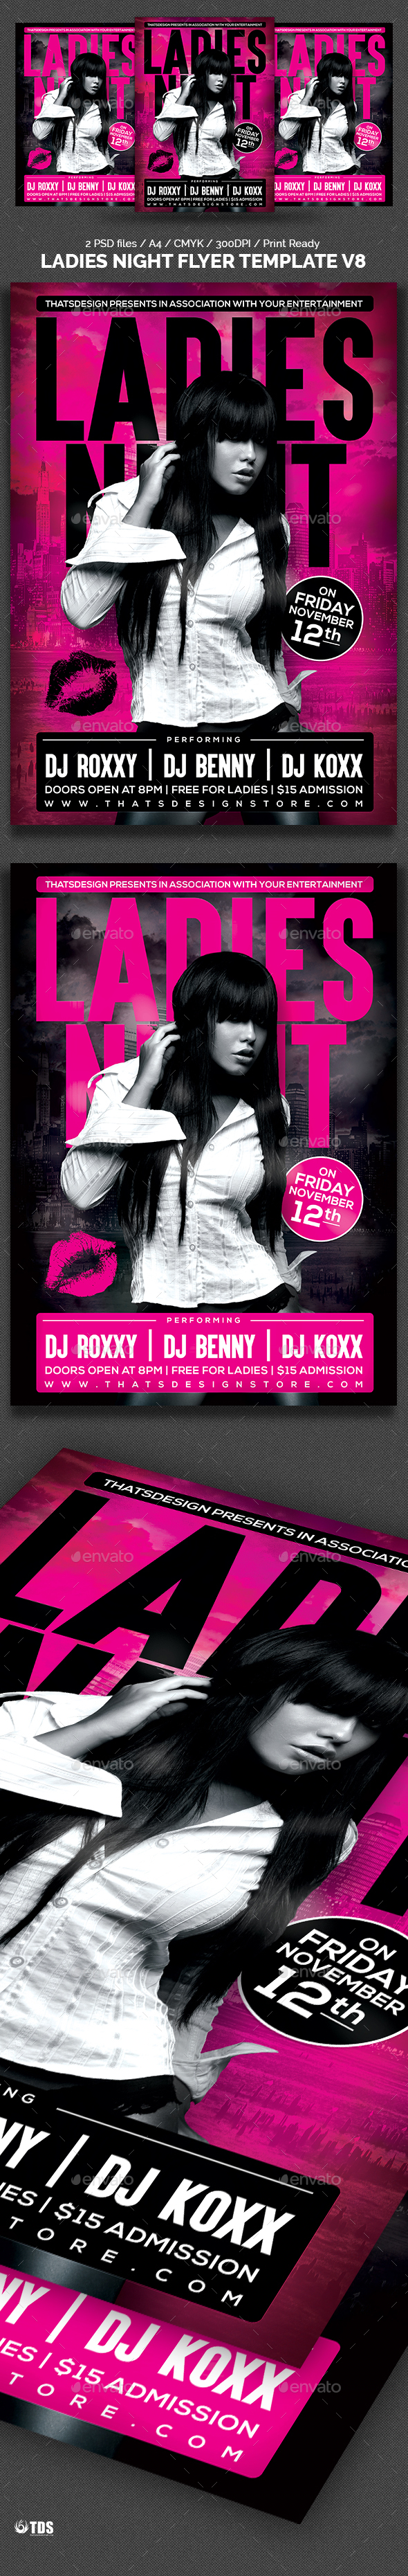 Ladies Night Flyer Template V8 - Clubs & Parties Events